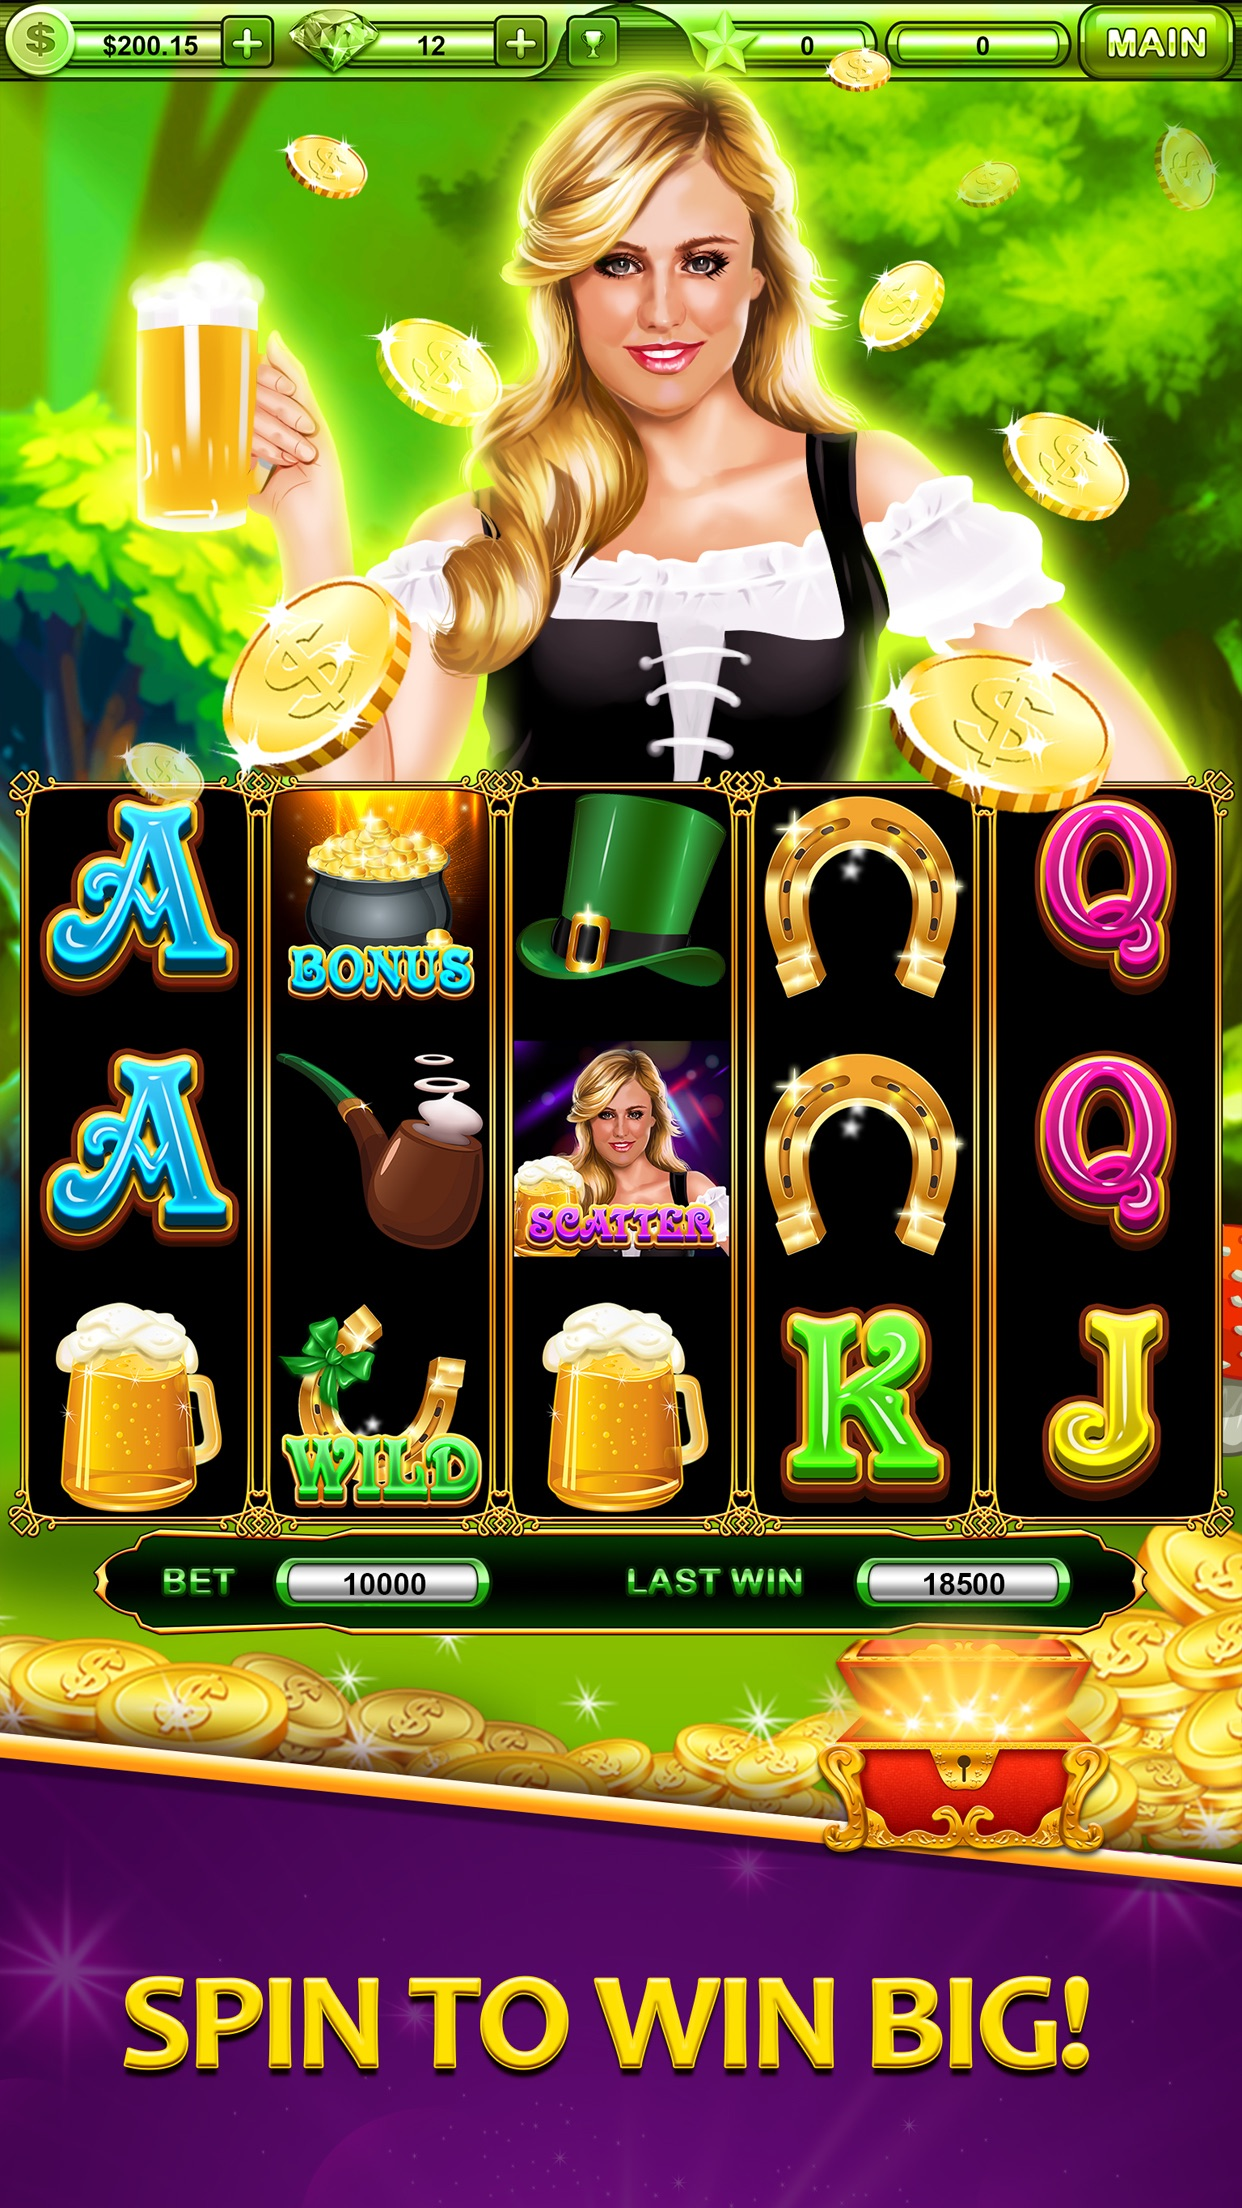 Triple Spin Casino Slots - All New, Grand Vegas Slot Machine Games in the Double Rivers Valley! Screenshot